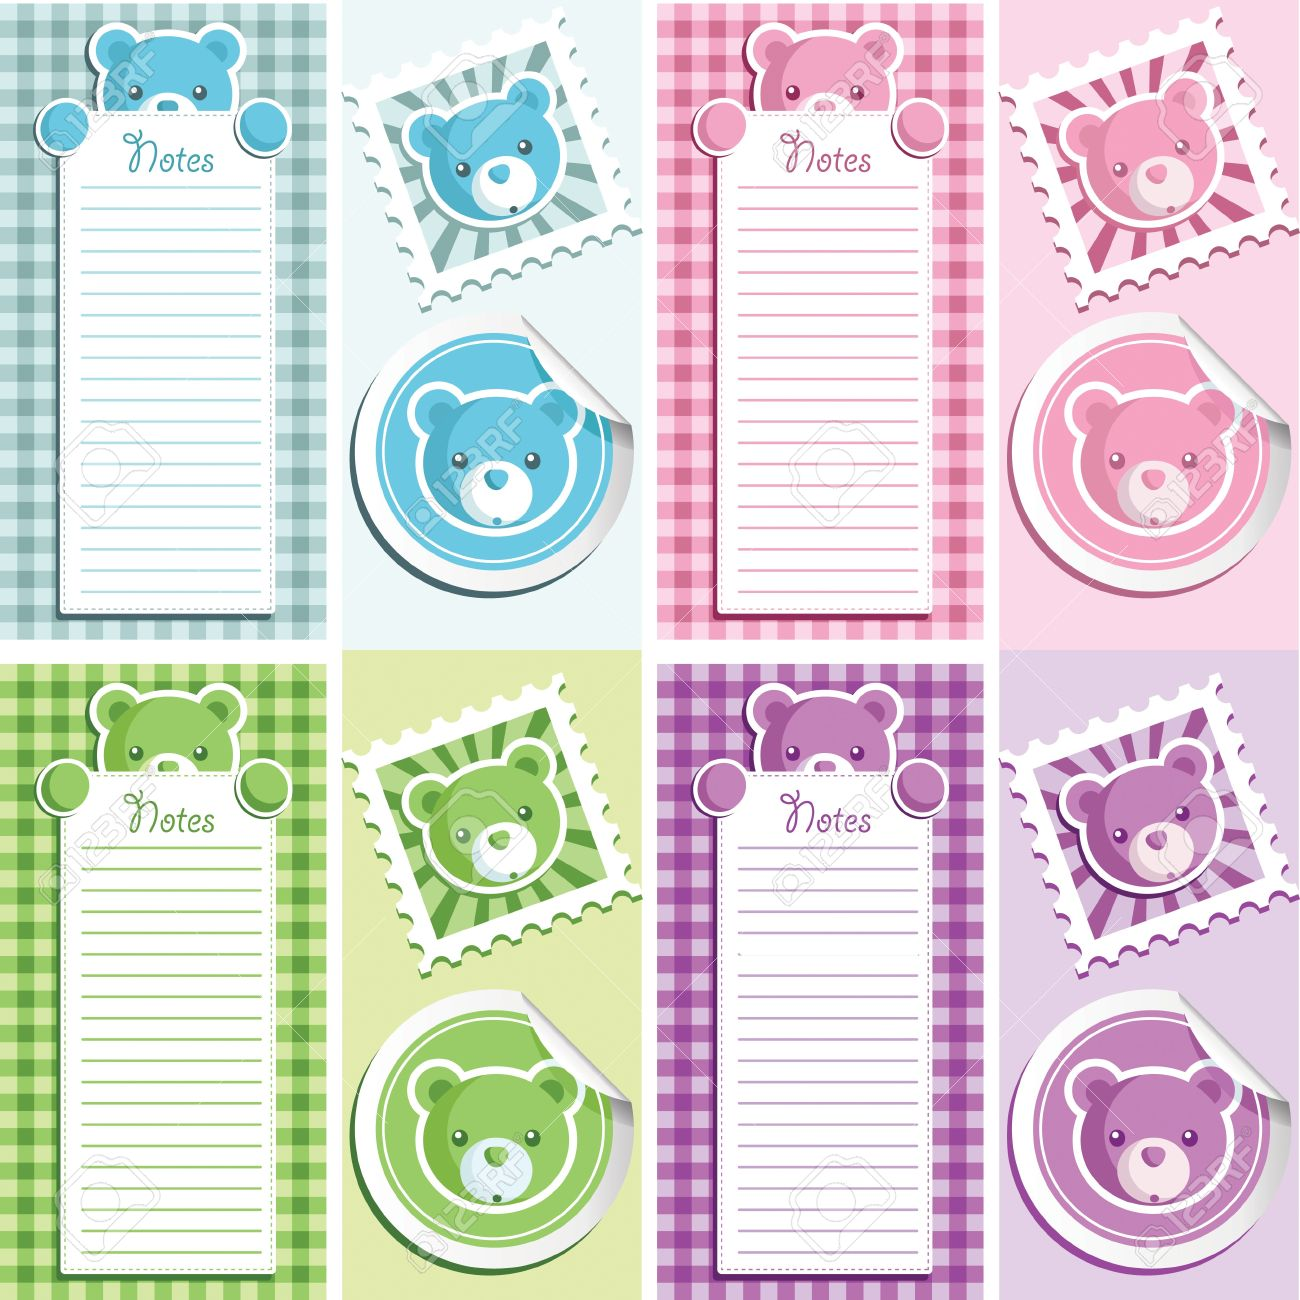 Cute Scrapbook Baby Shower Design Elements Royalty Free Cliparts